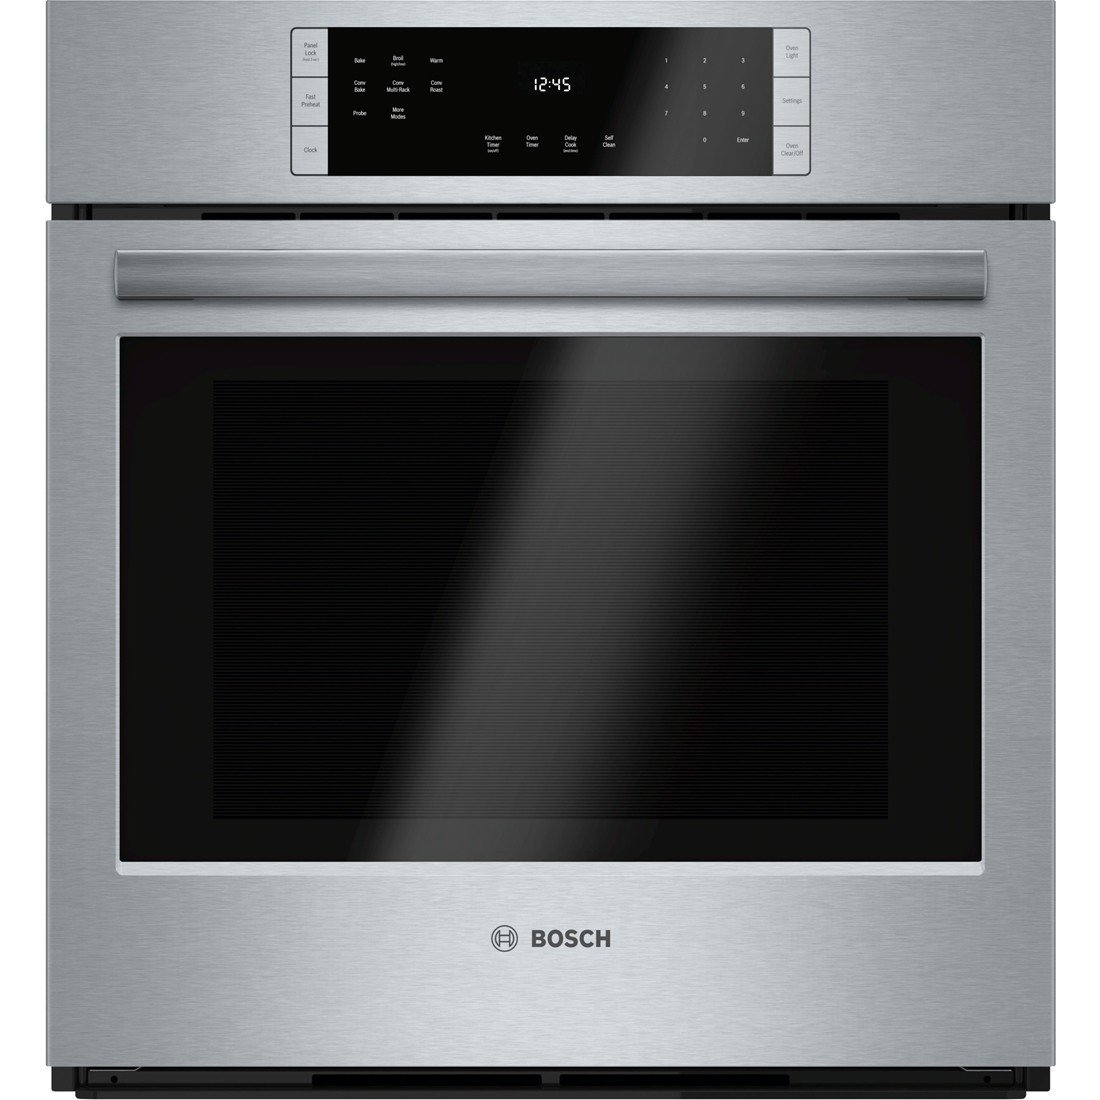 Bosch HBN8451UC 800 27 Stainless Steel Electric Single Wall Oven Convection